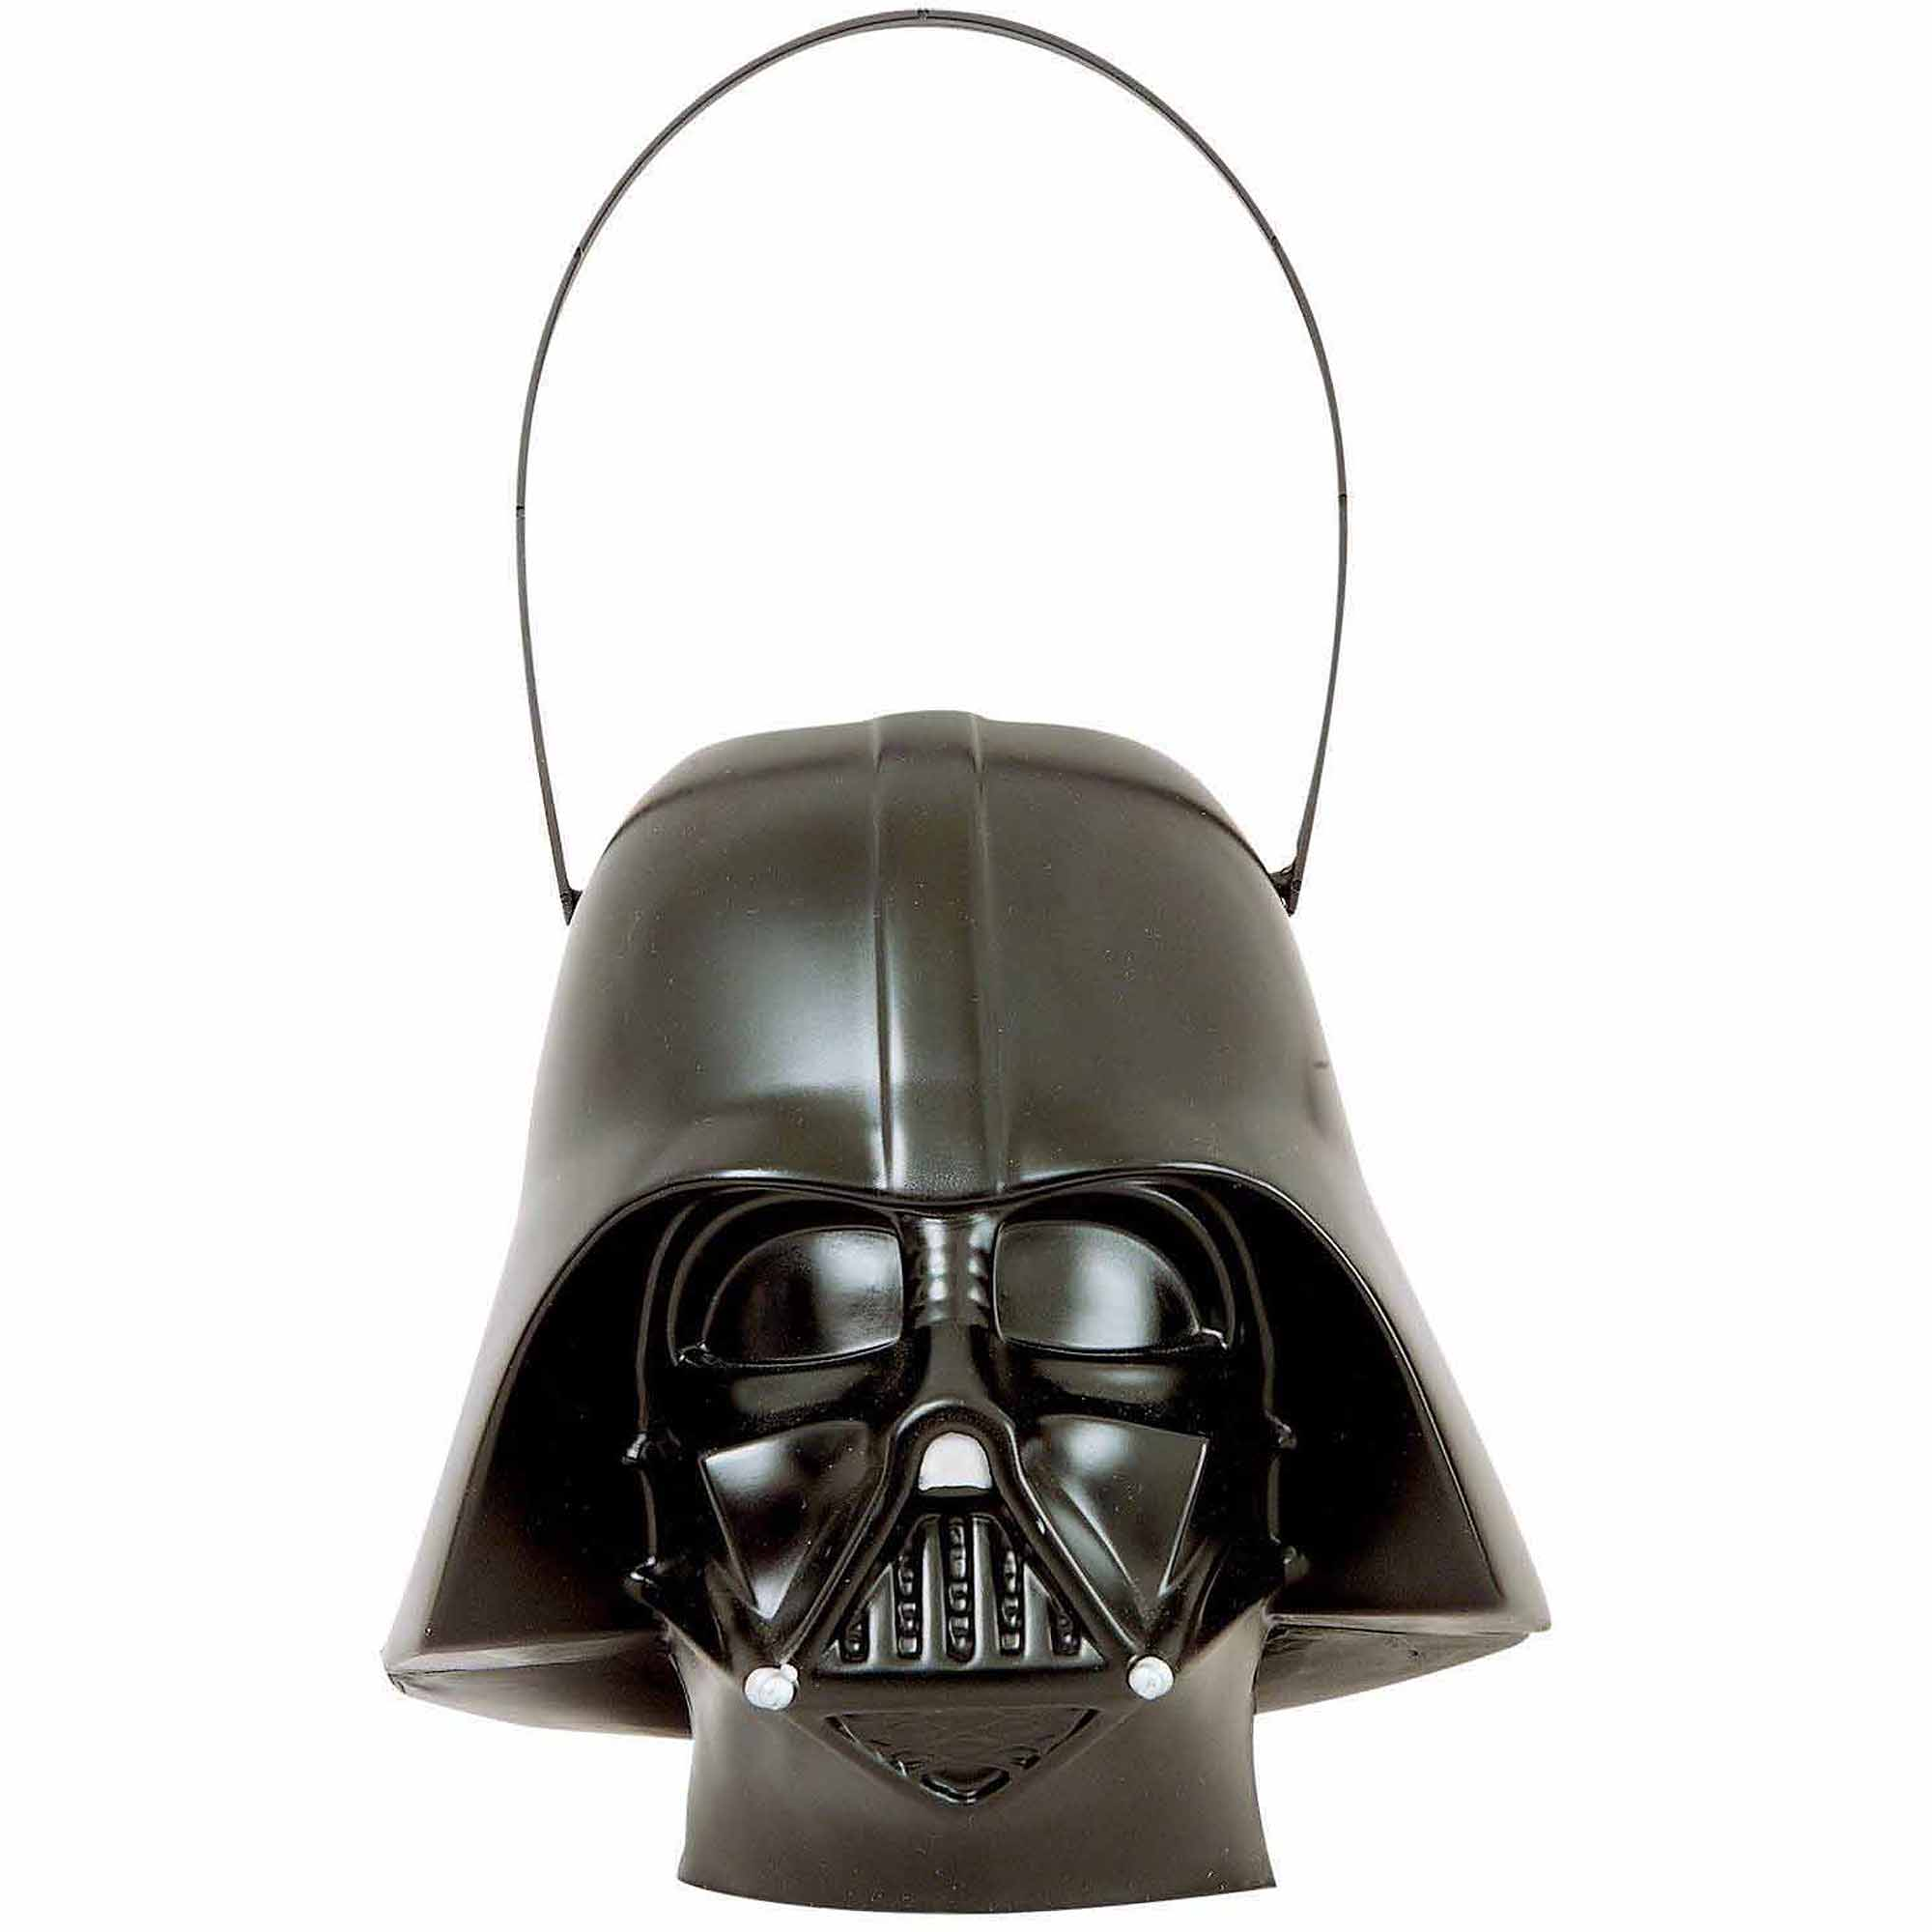 Darth Vader Pail Halloween Costume Accessory